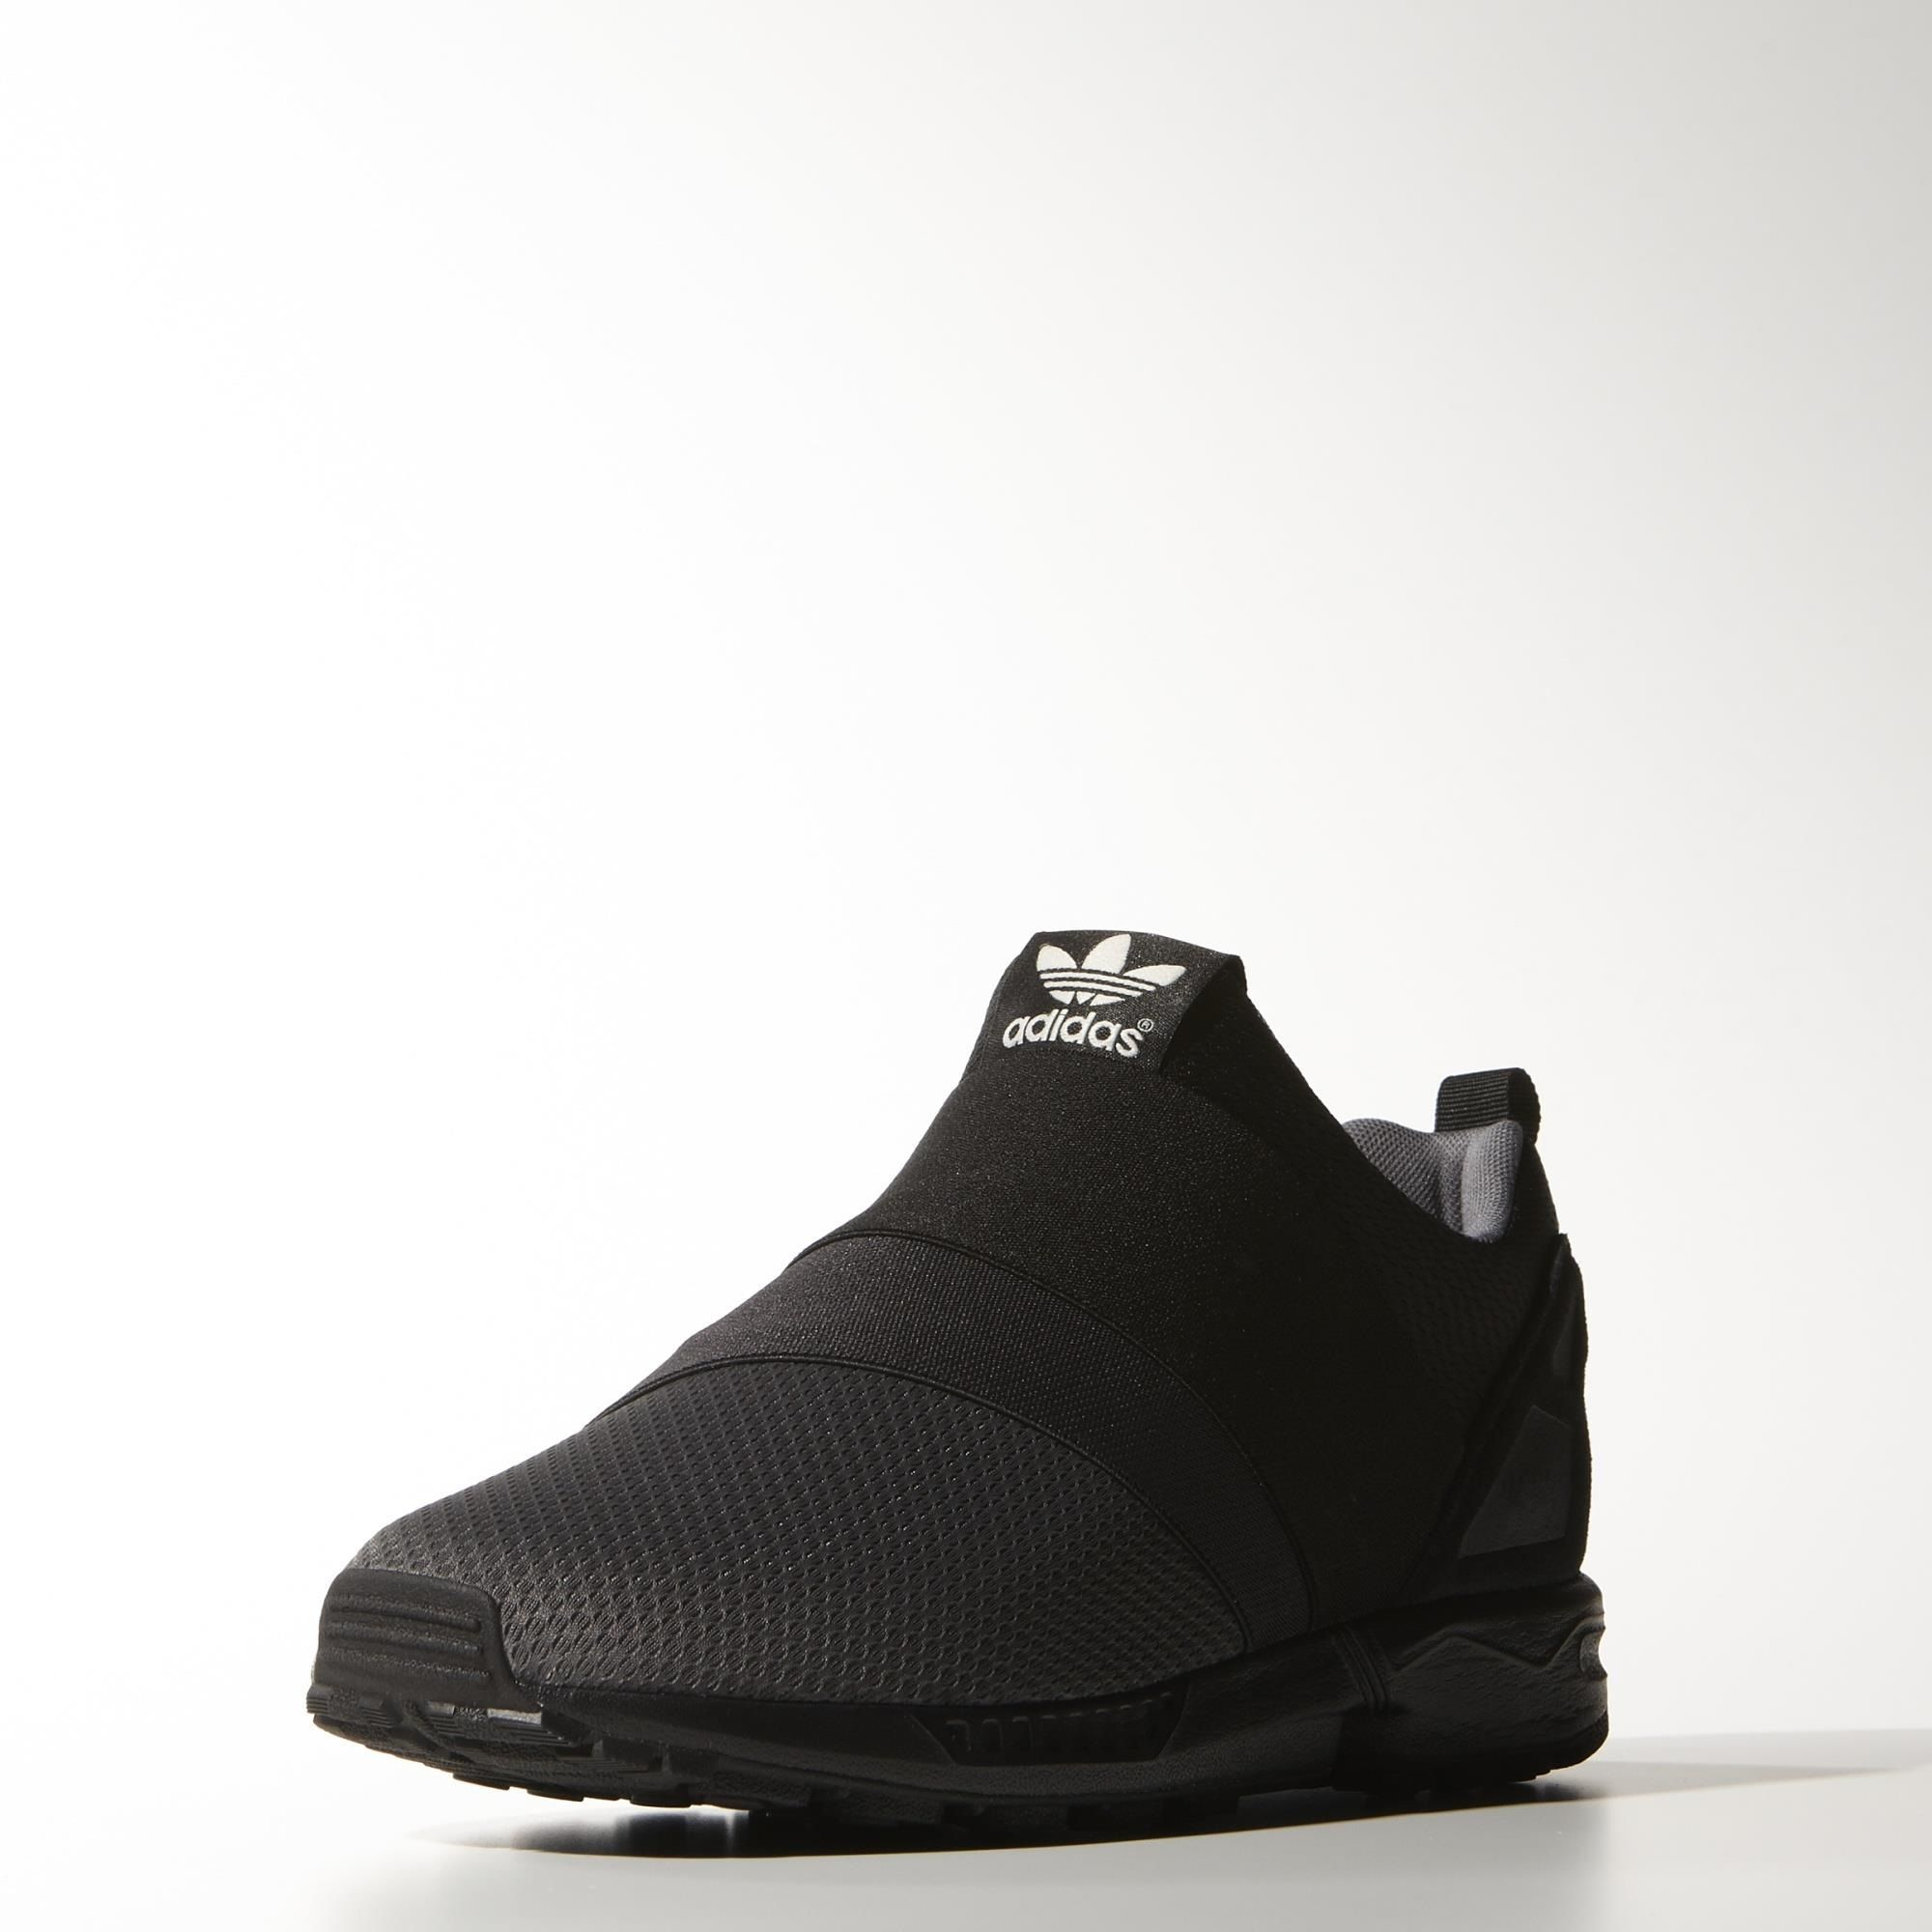 sale retailer 44f2a 8a77f zx flux slip on   Vague in 2019   Adidas shoes, Adidas zx, Shoes ...